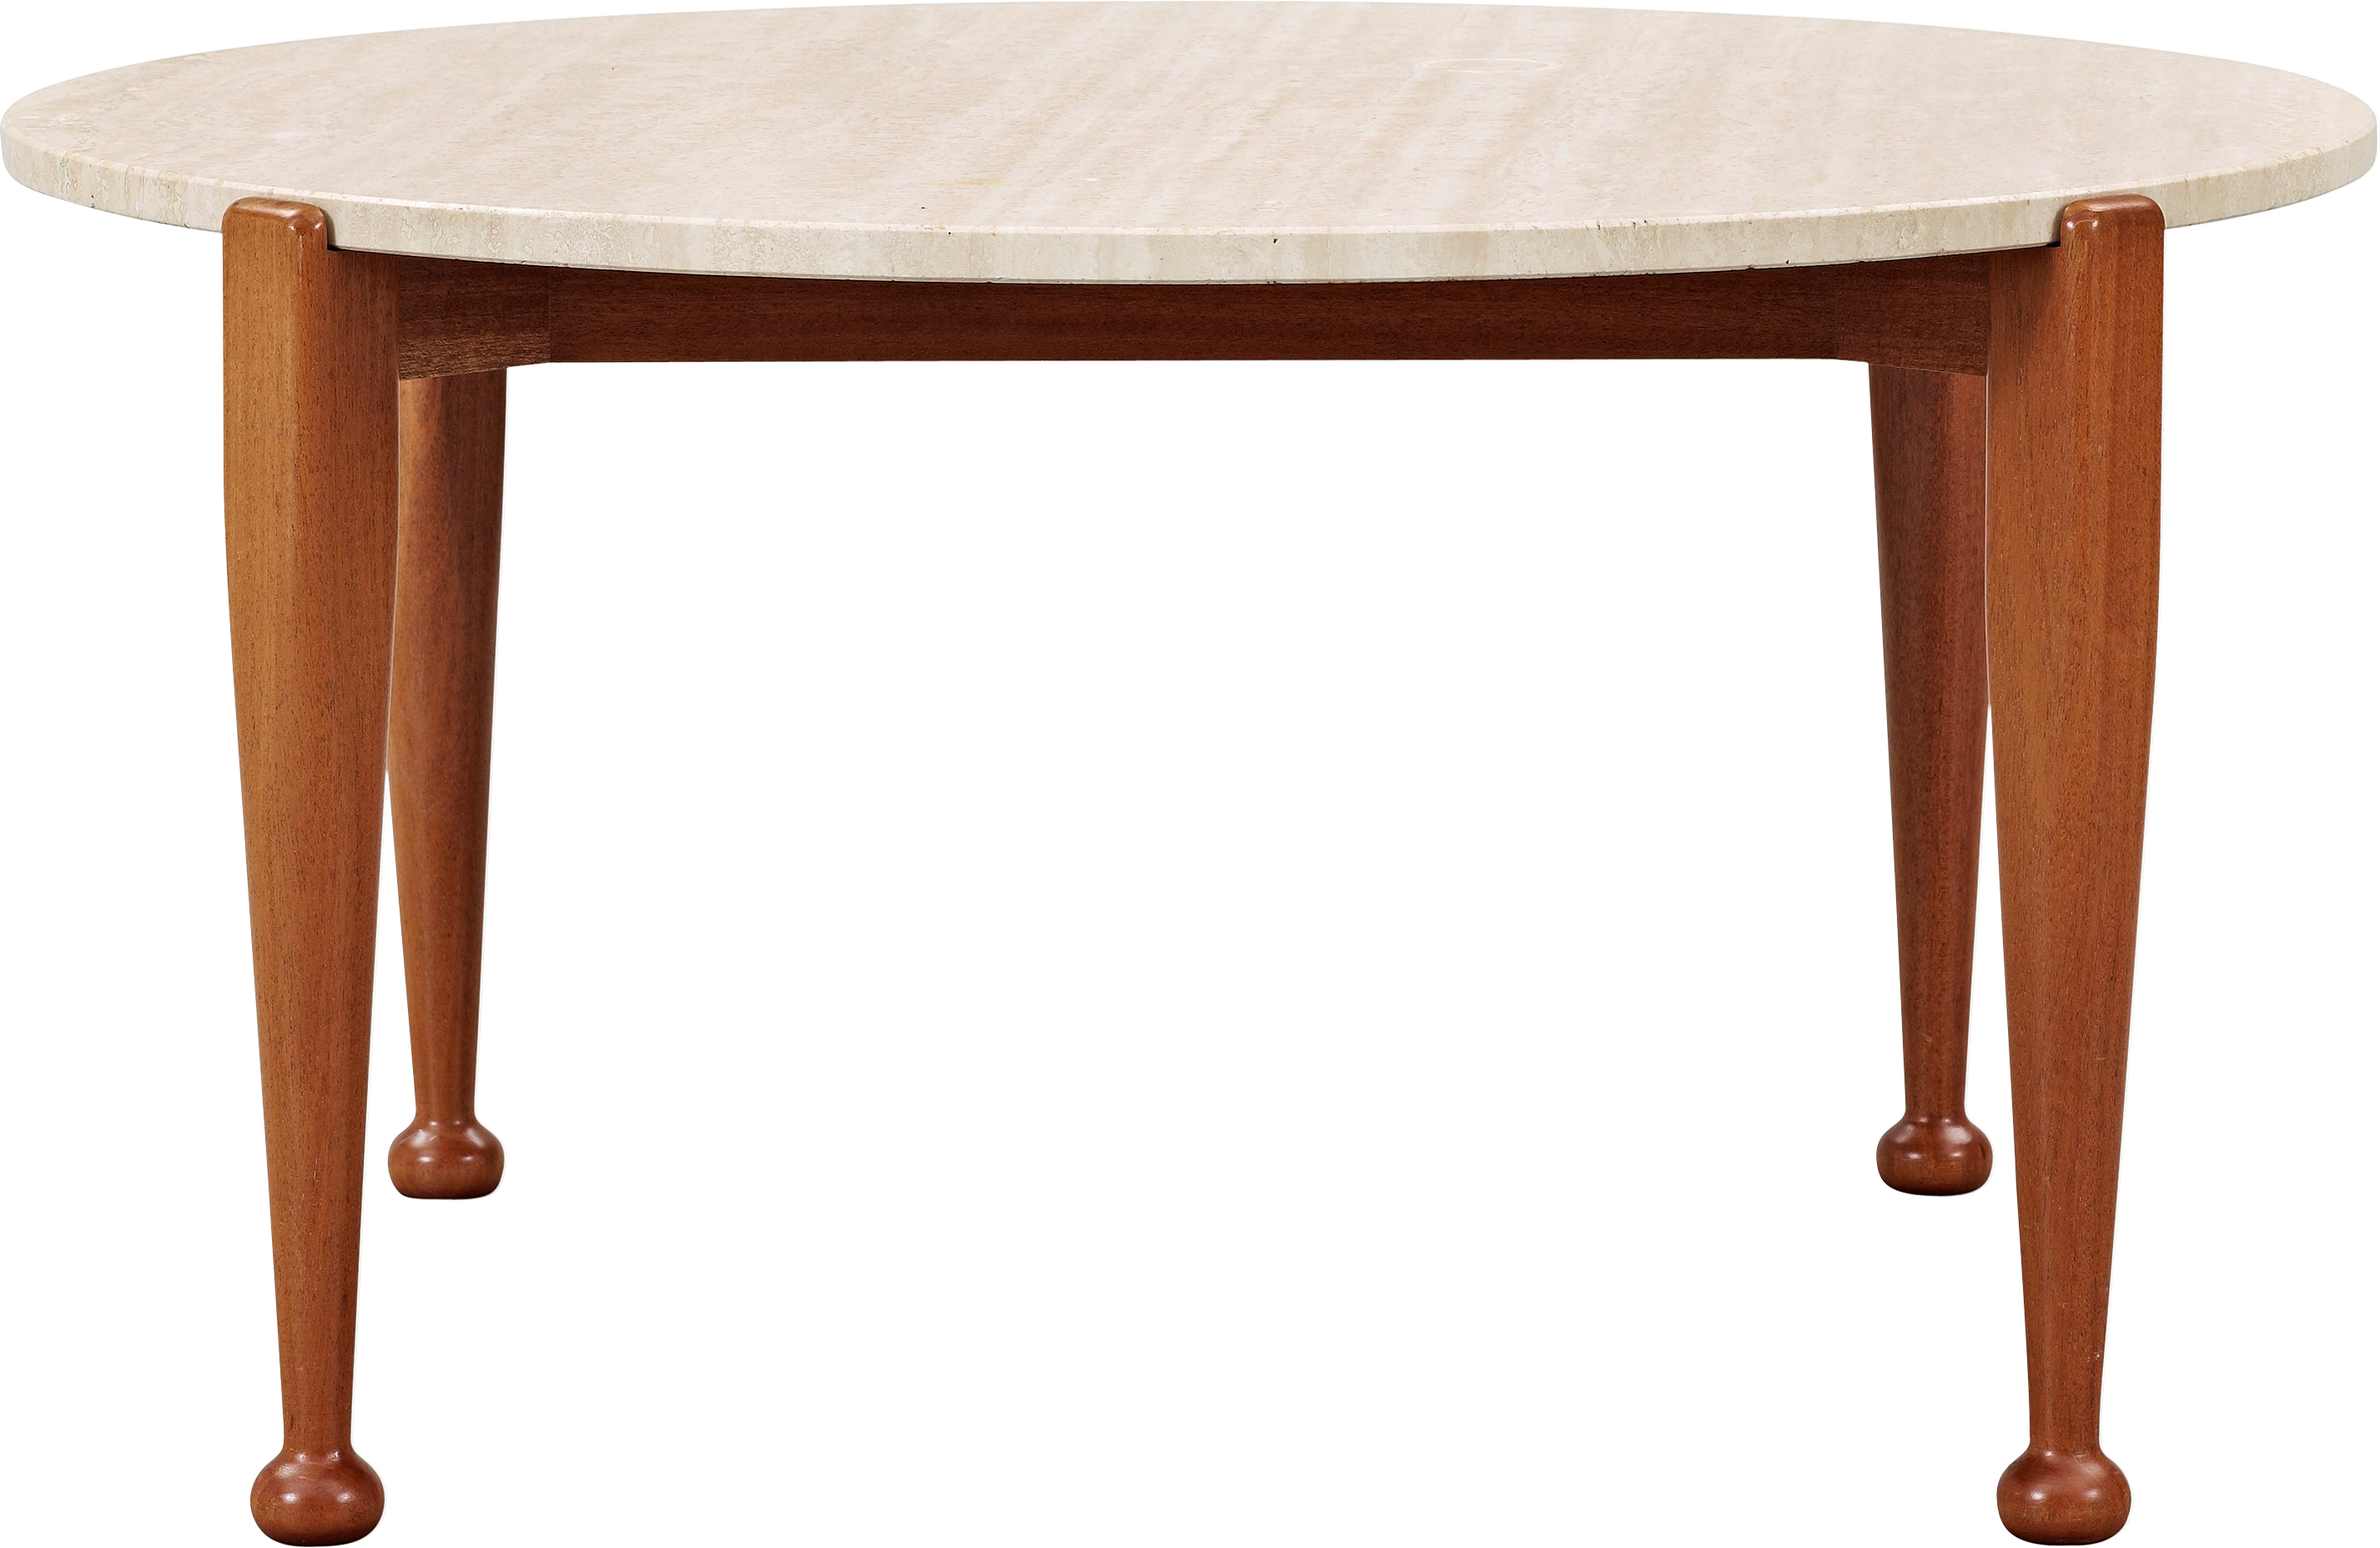 Table clipart living room table. Png image free download